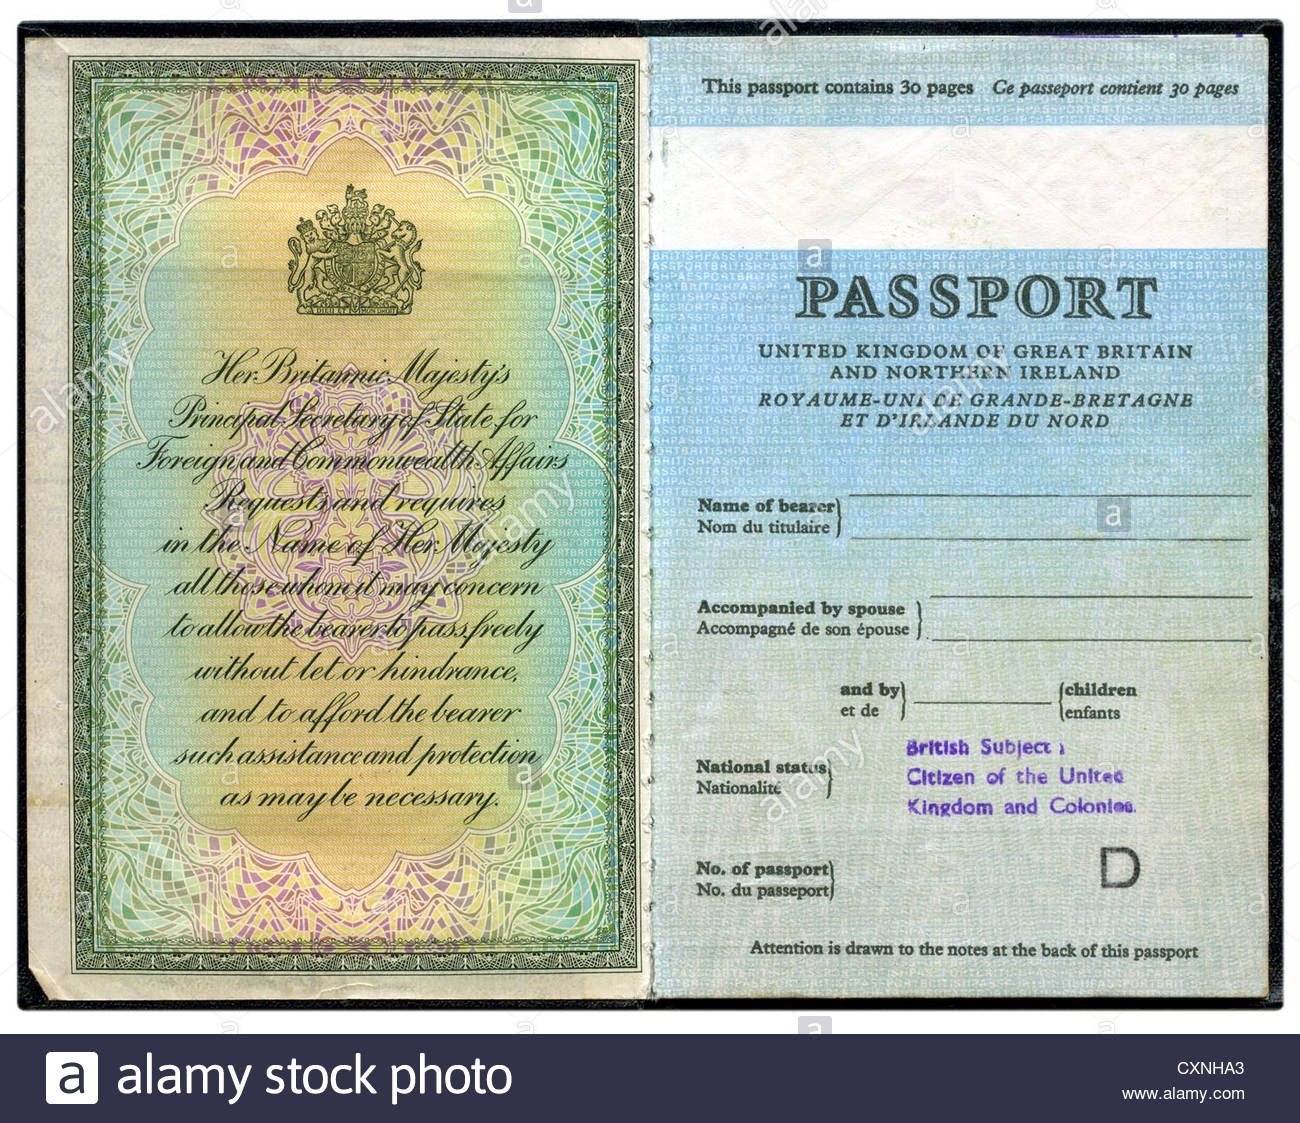 Download This Stock Image Old British Passport Cxnha3 From Alamy S Library Of Millions Of High Resolution Stock Photos Illustrations And Vectors